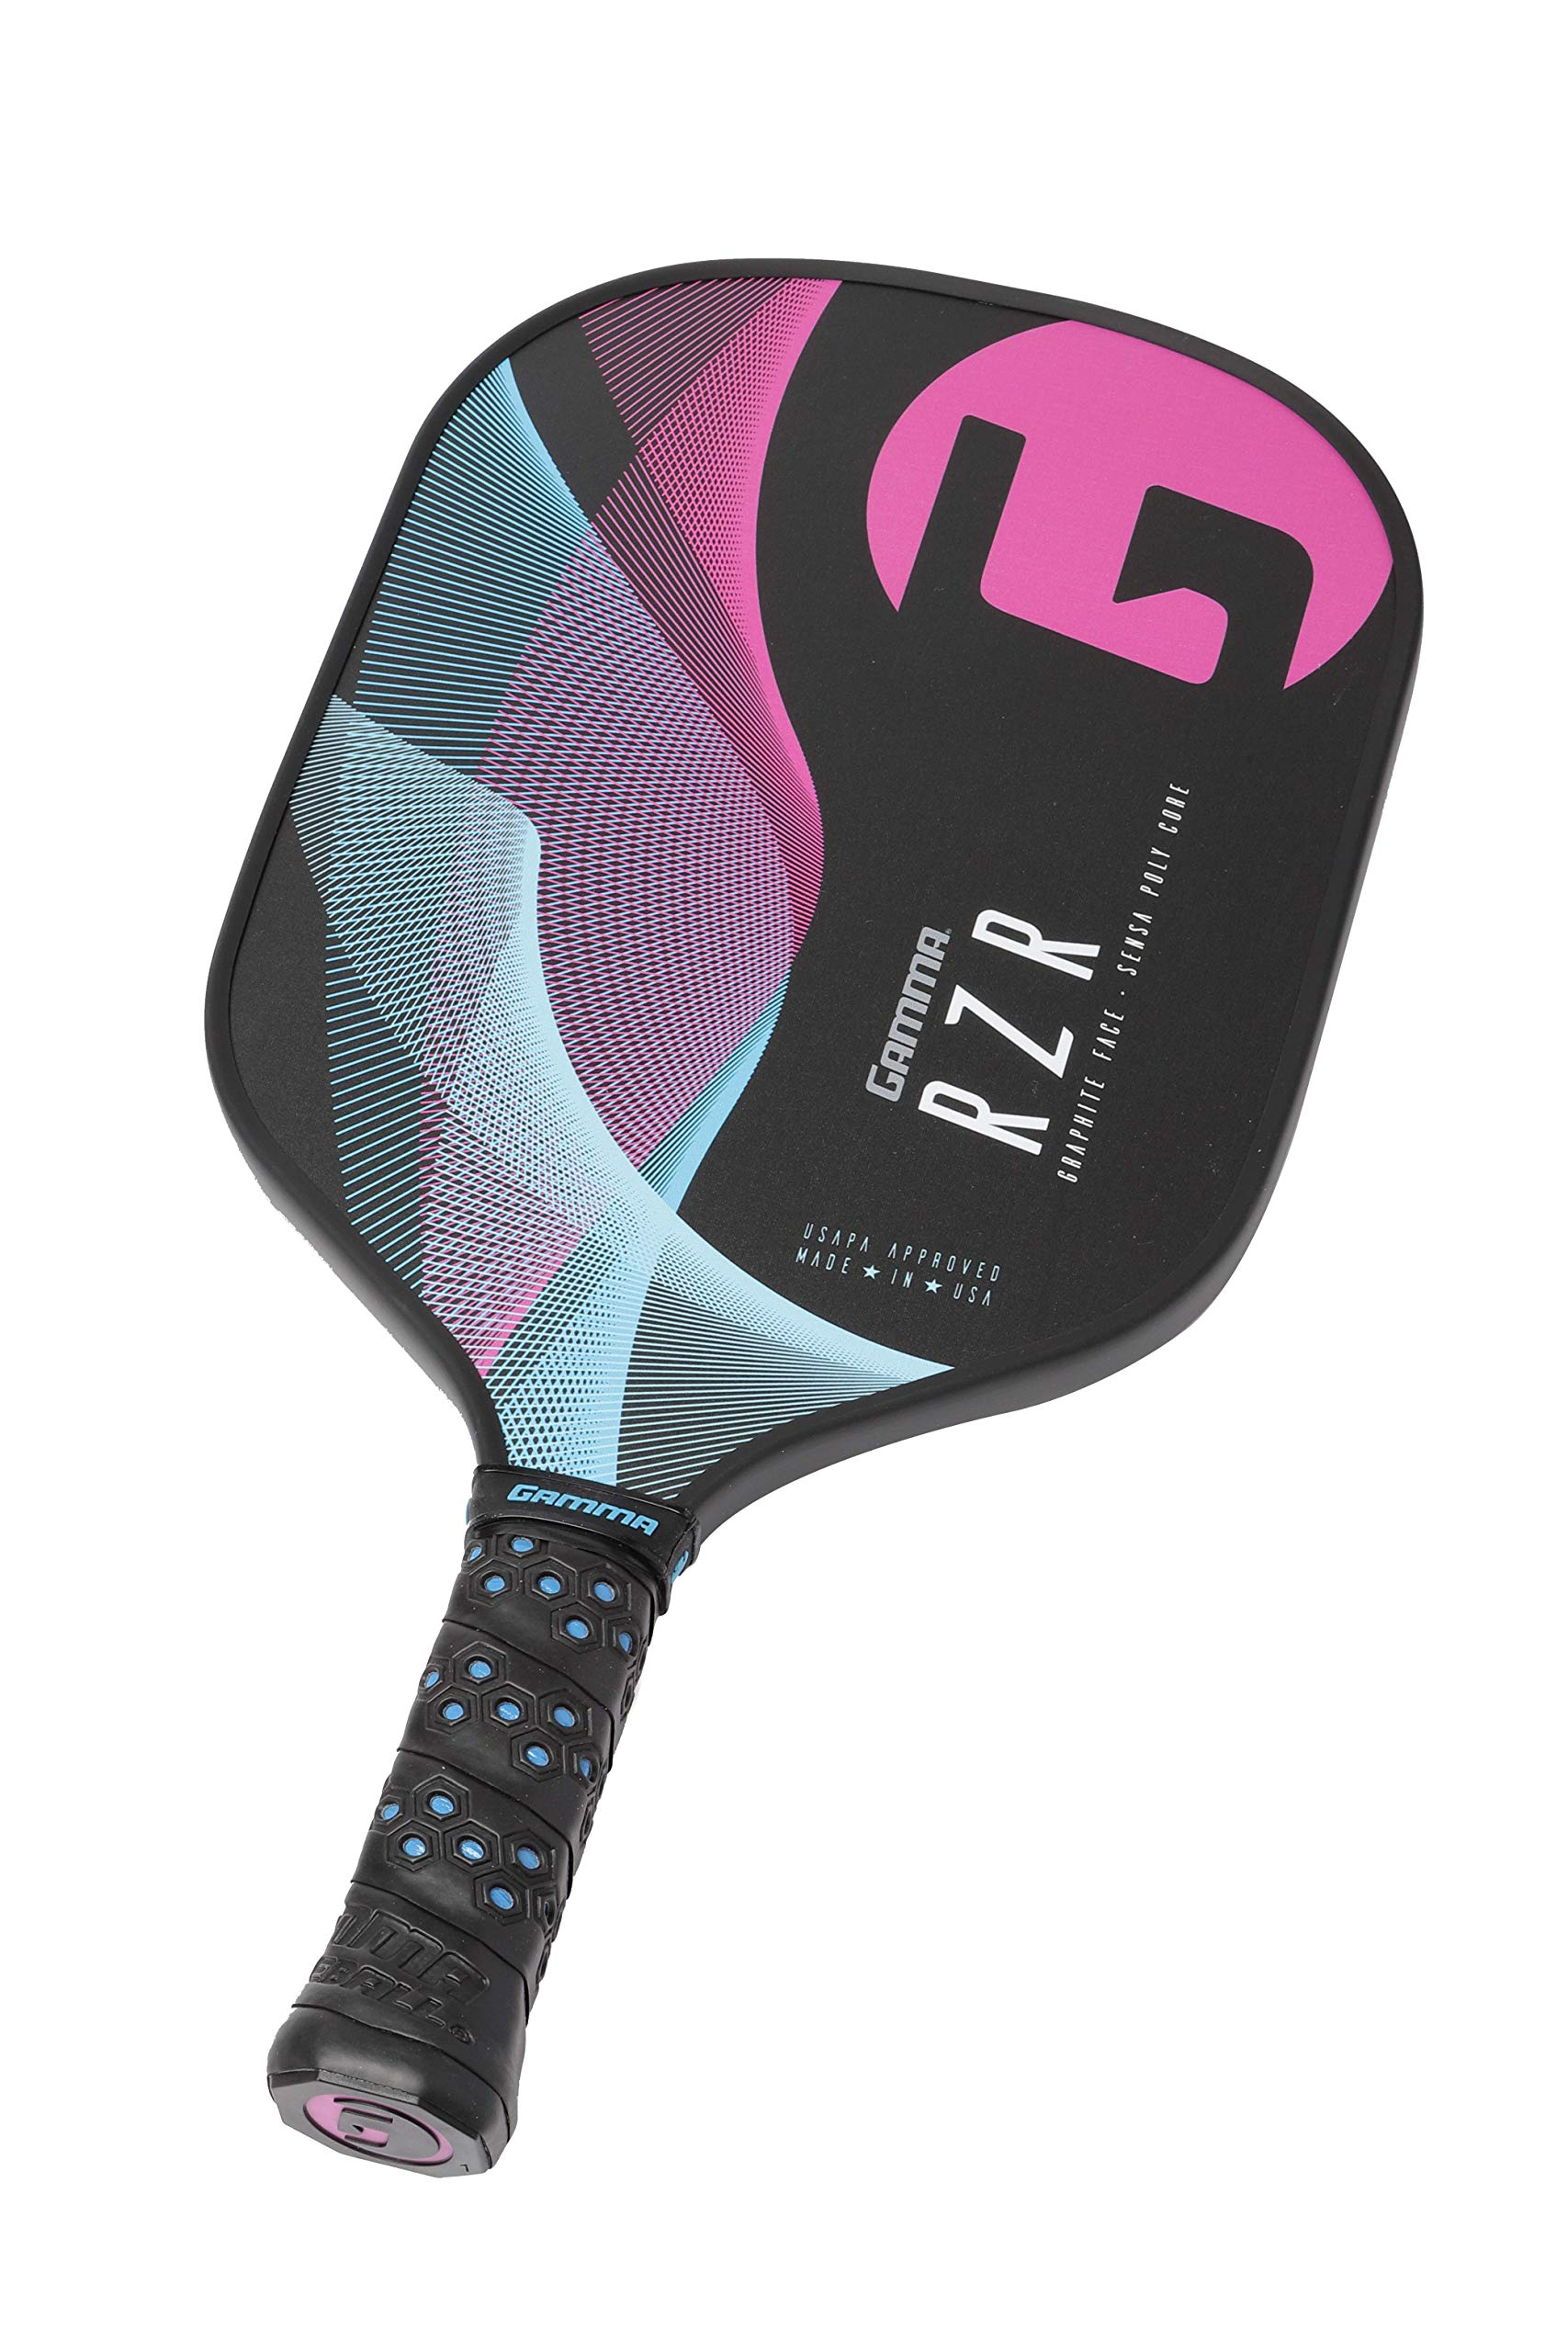 Gamma RZR Composite Pickleball Paddle: Pickle Ball Paddles for Indoor & Outdoor Play - USAPA Approved Racquet for Adults & Kids - Pink/Blue by Gamma (Image #4)